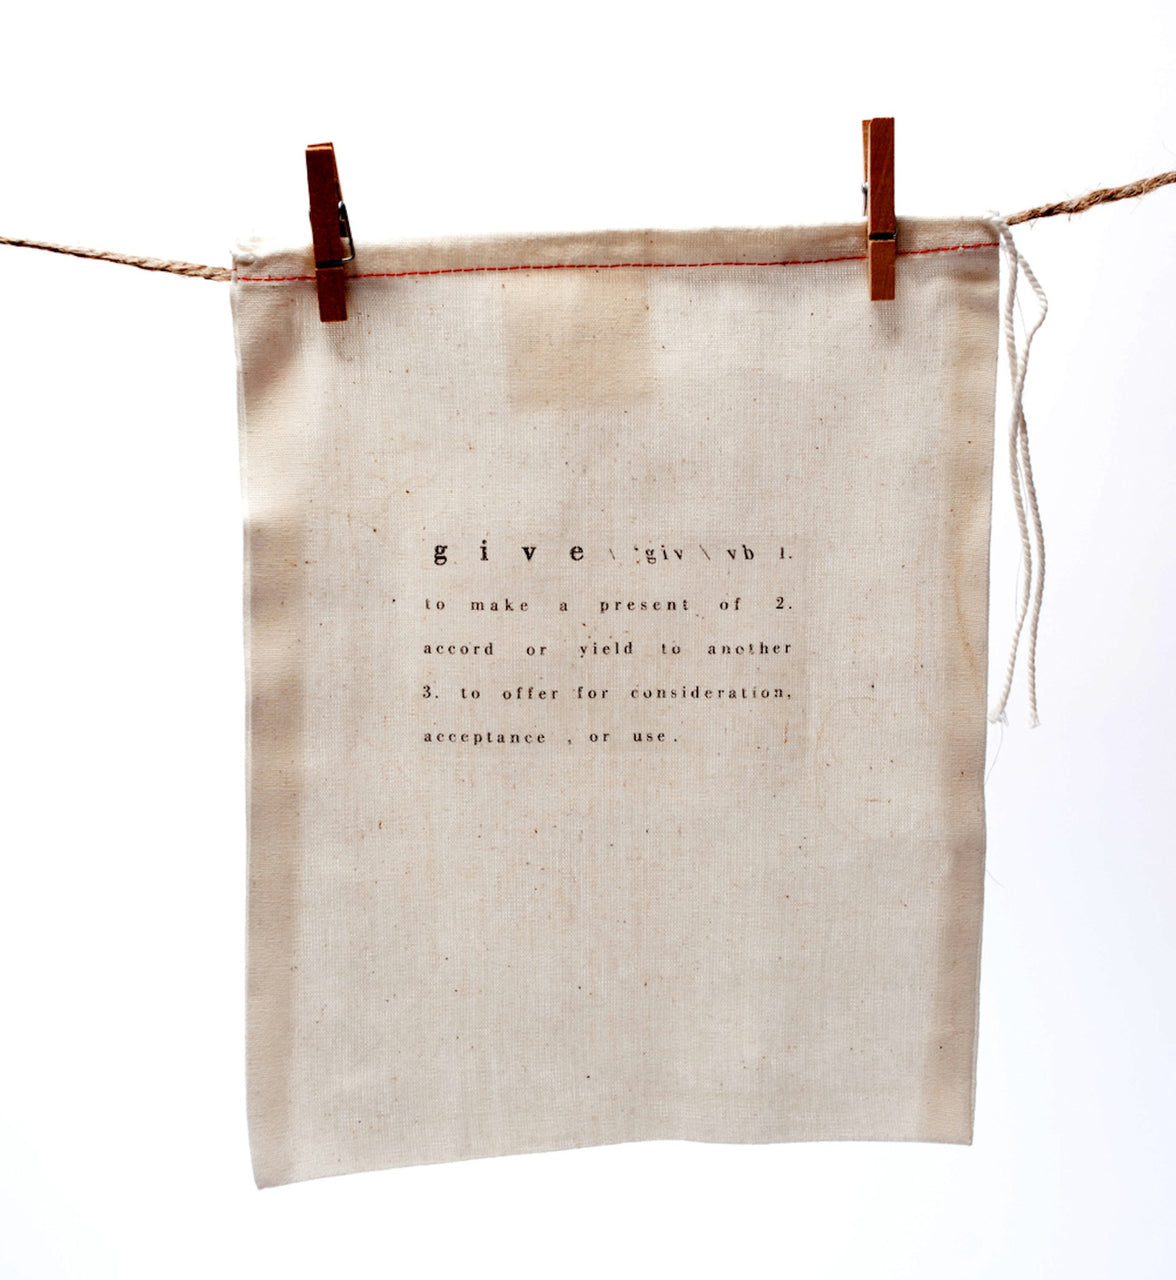 printed cotton bags with text